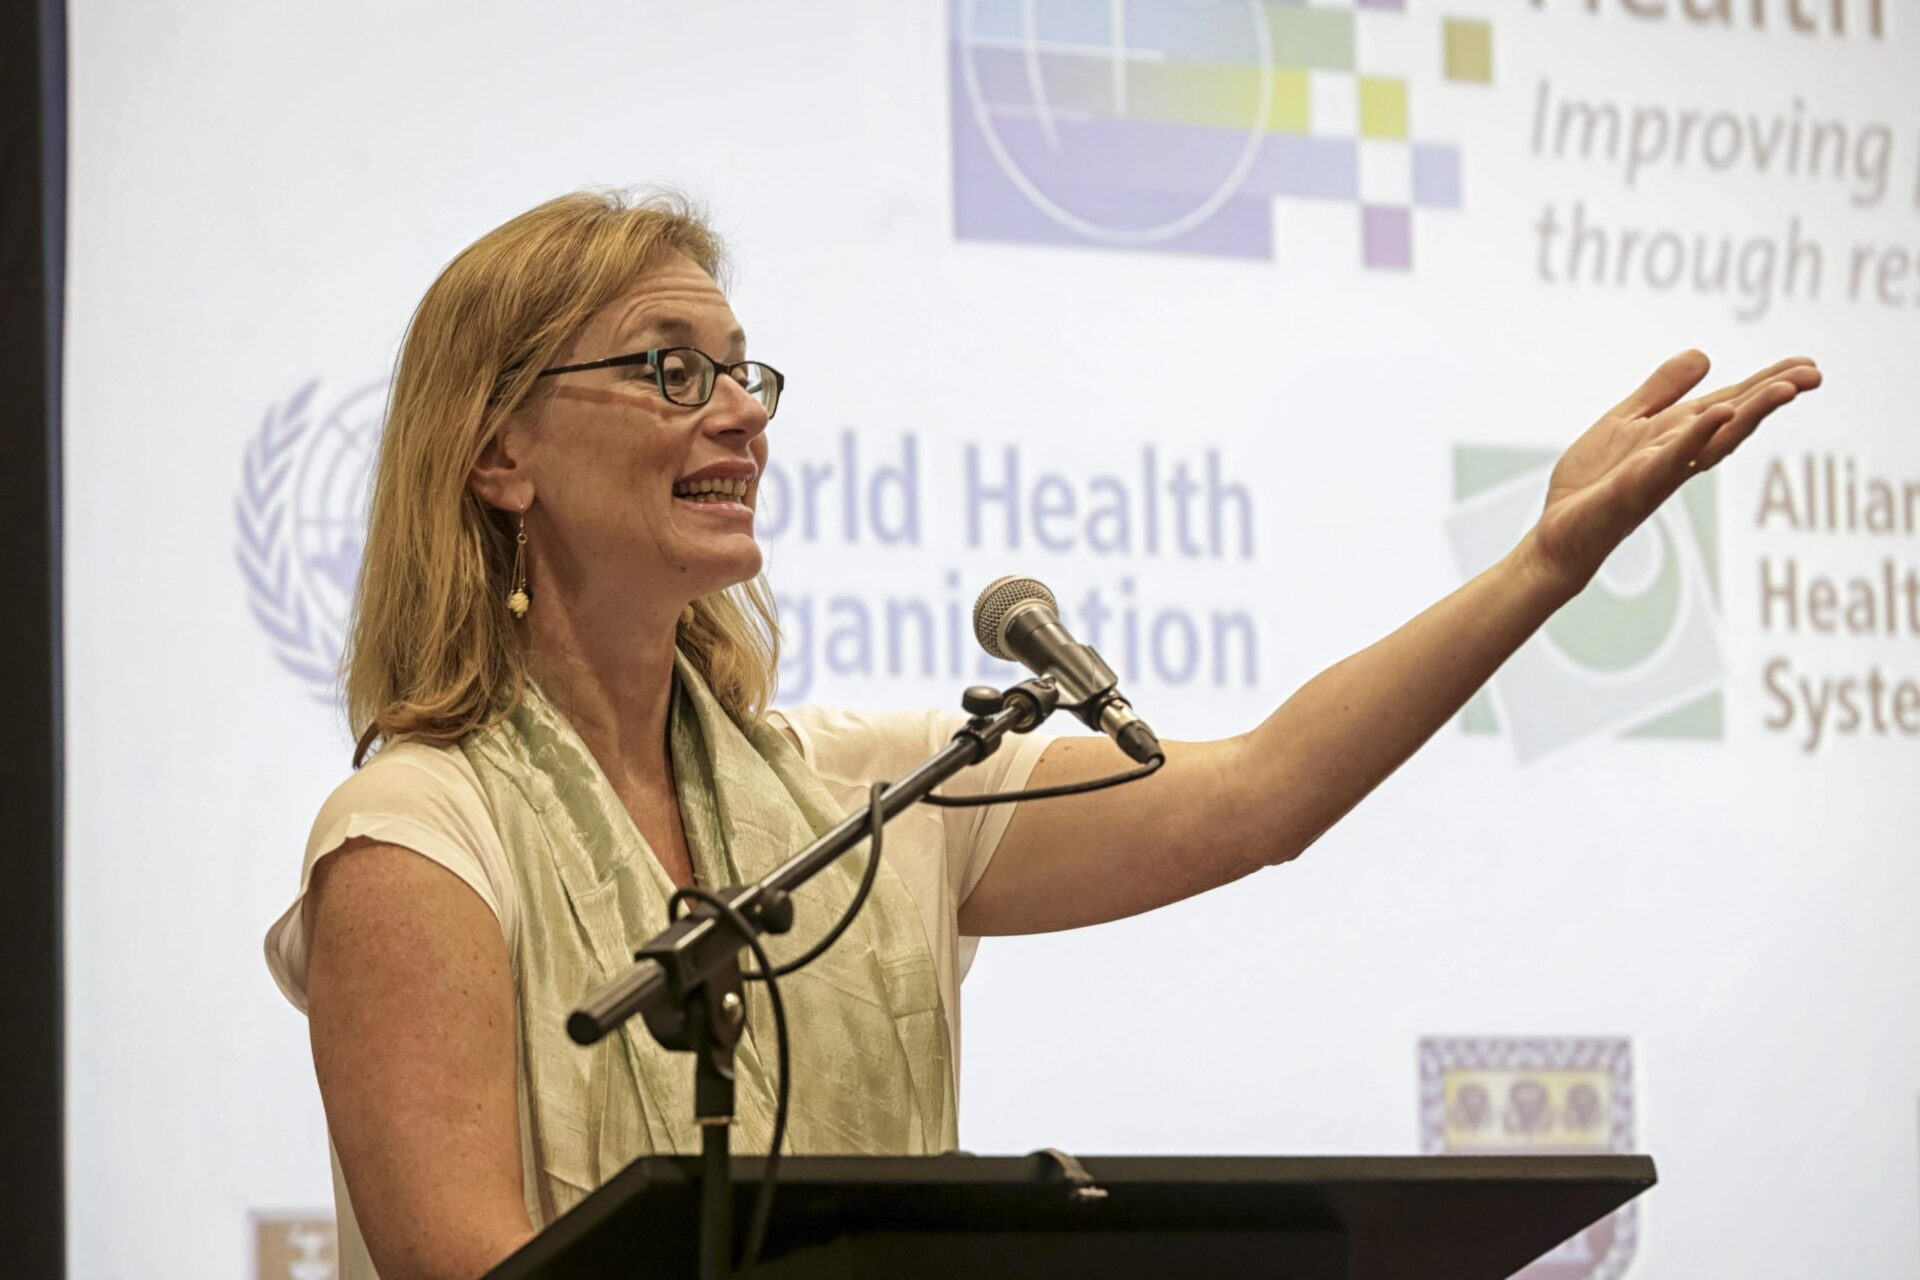 Cape Town Statement from the Third Global Symposium on Health Systems Research